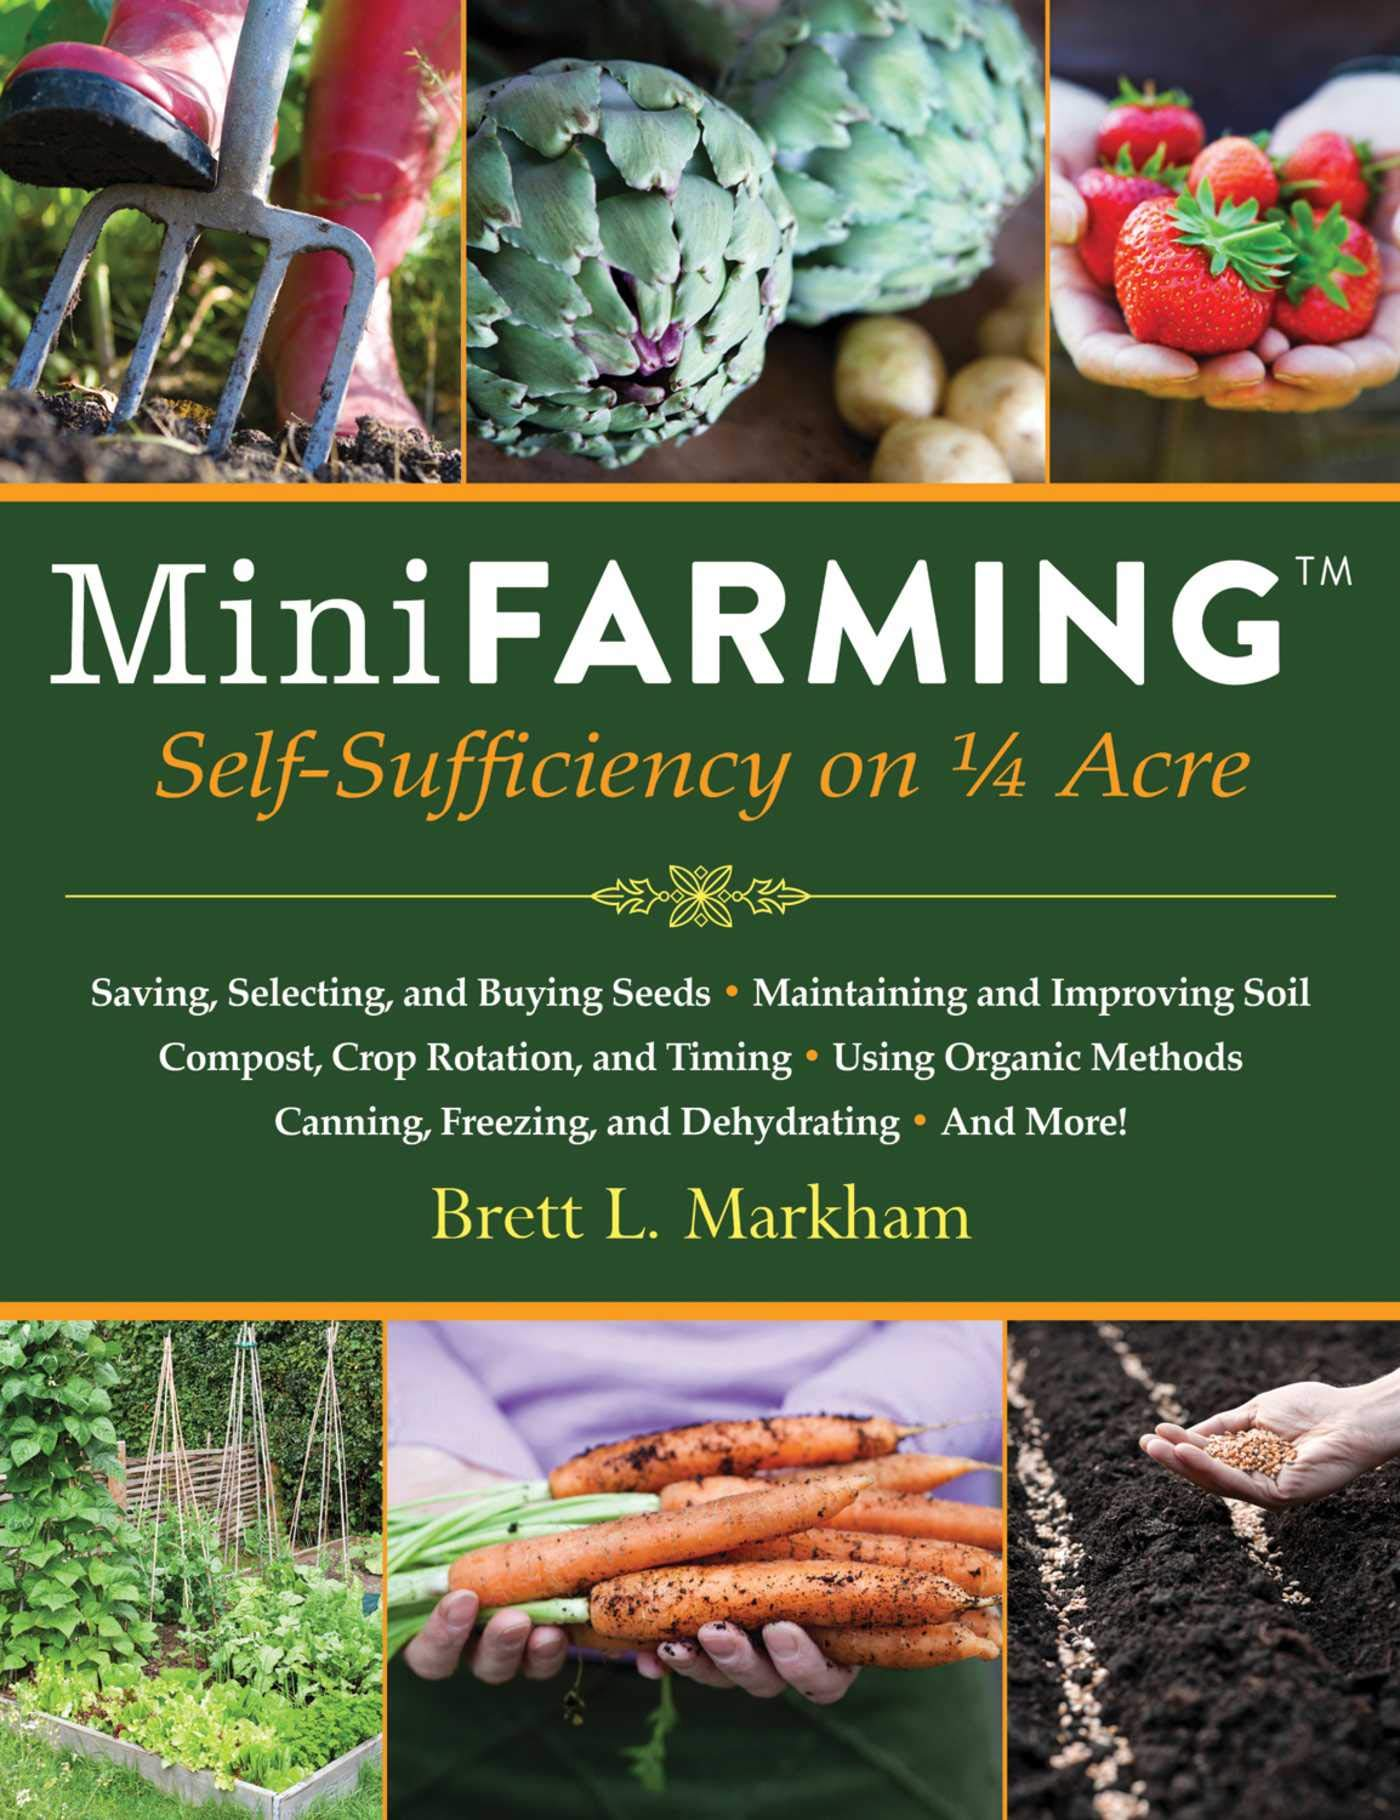 Mini Farming: Self-Sufficiency on 1/4 Acre by Skyhorse